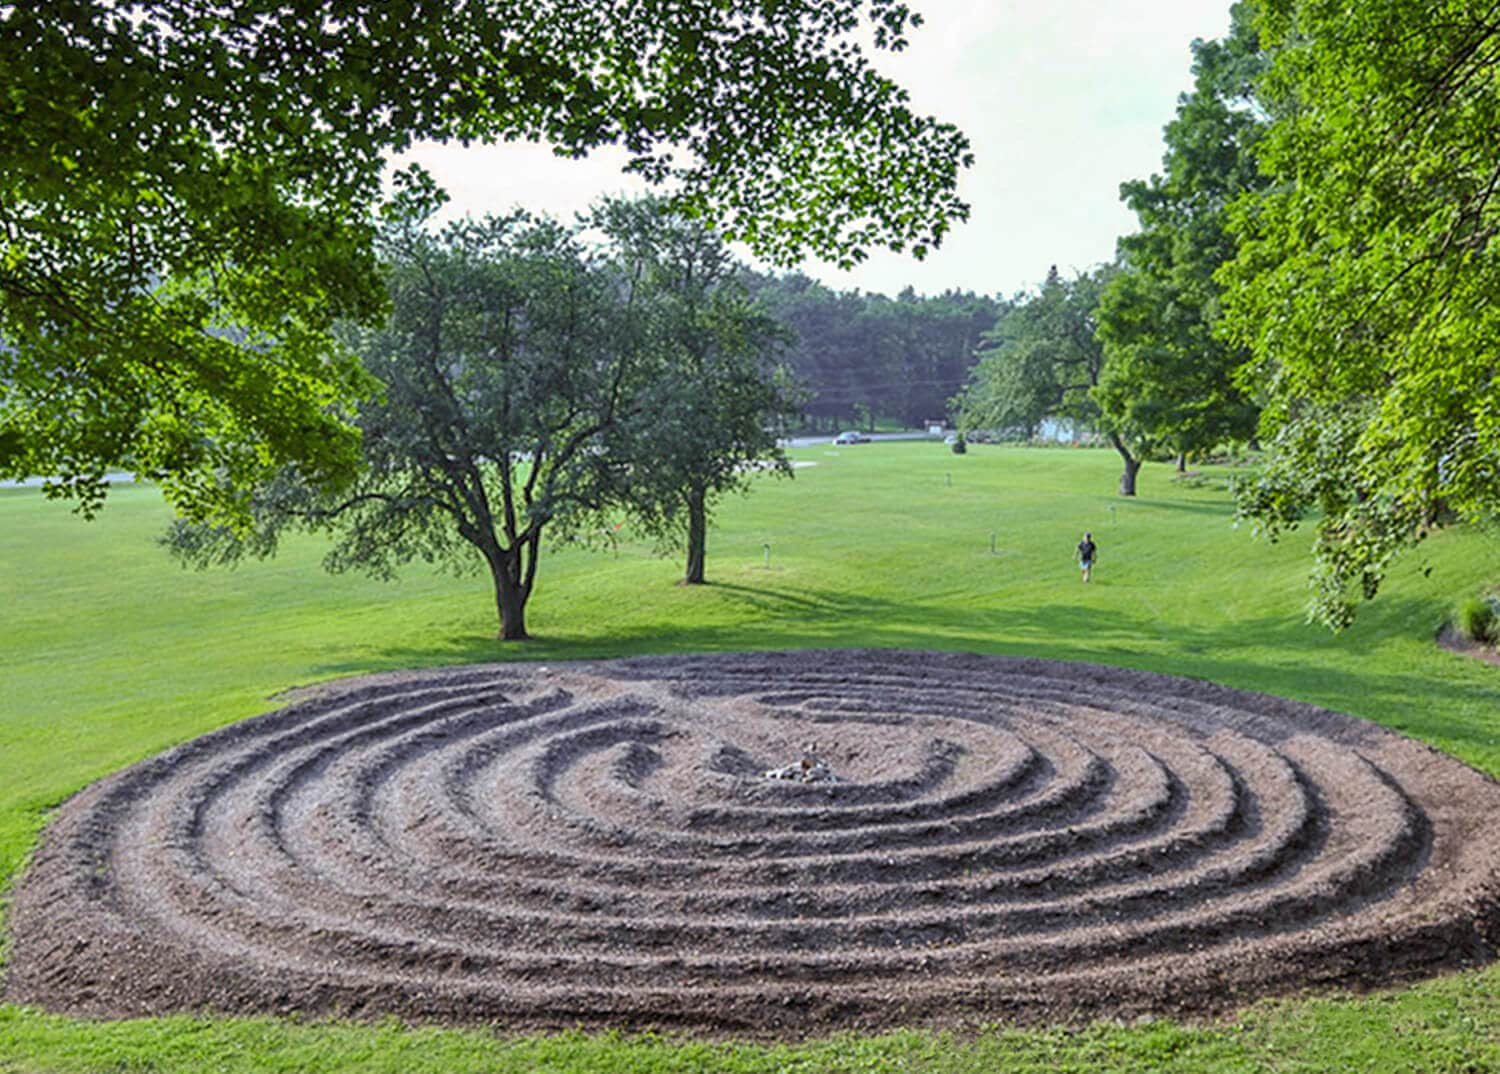 A therapeutic labyrinth on the grounds of the Mountainside Addiction Treatment Center in CT.